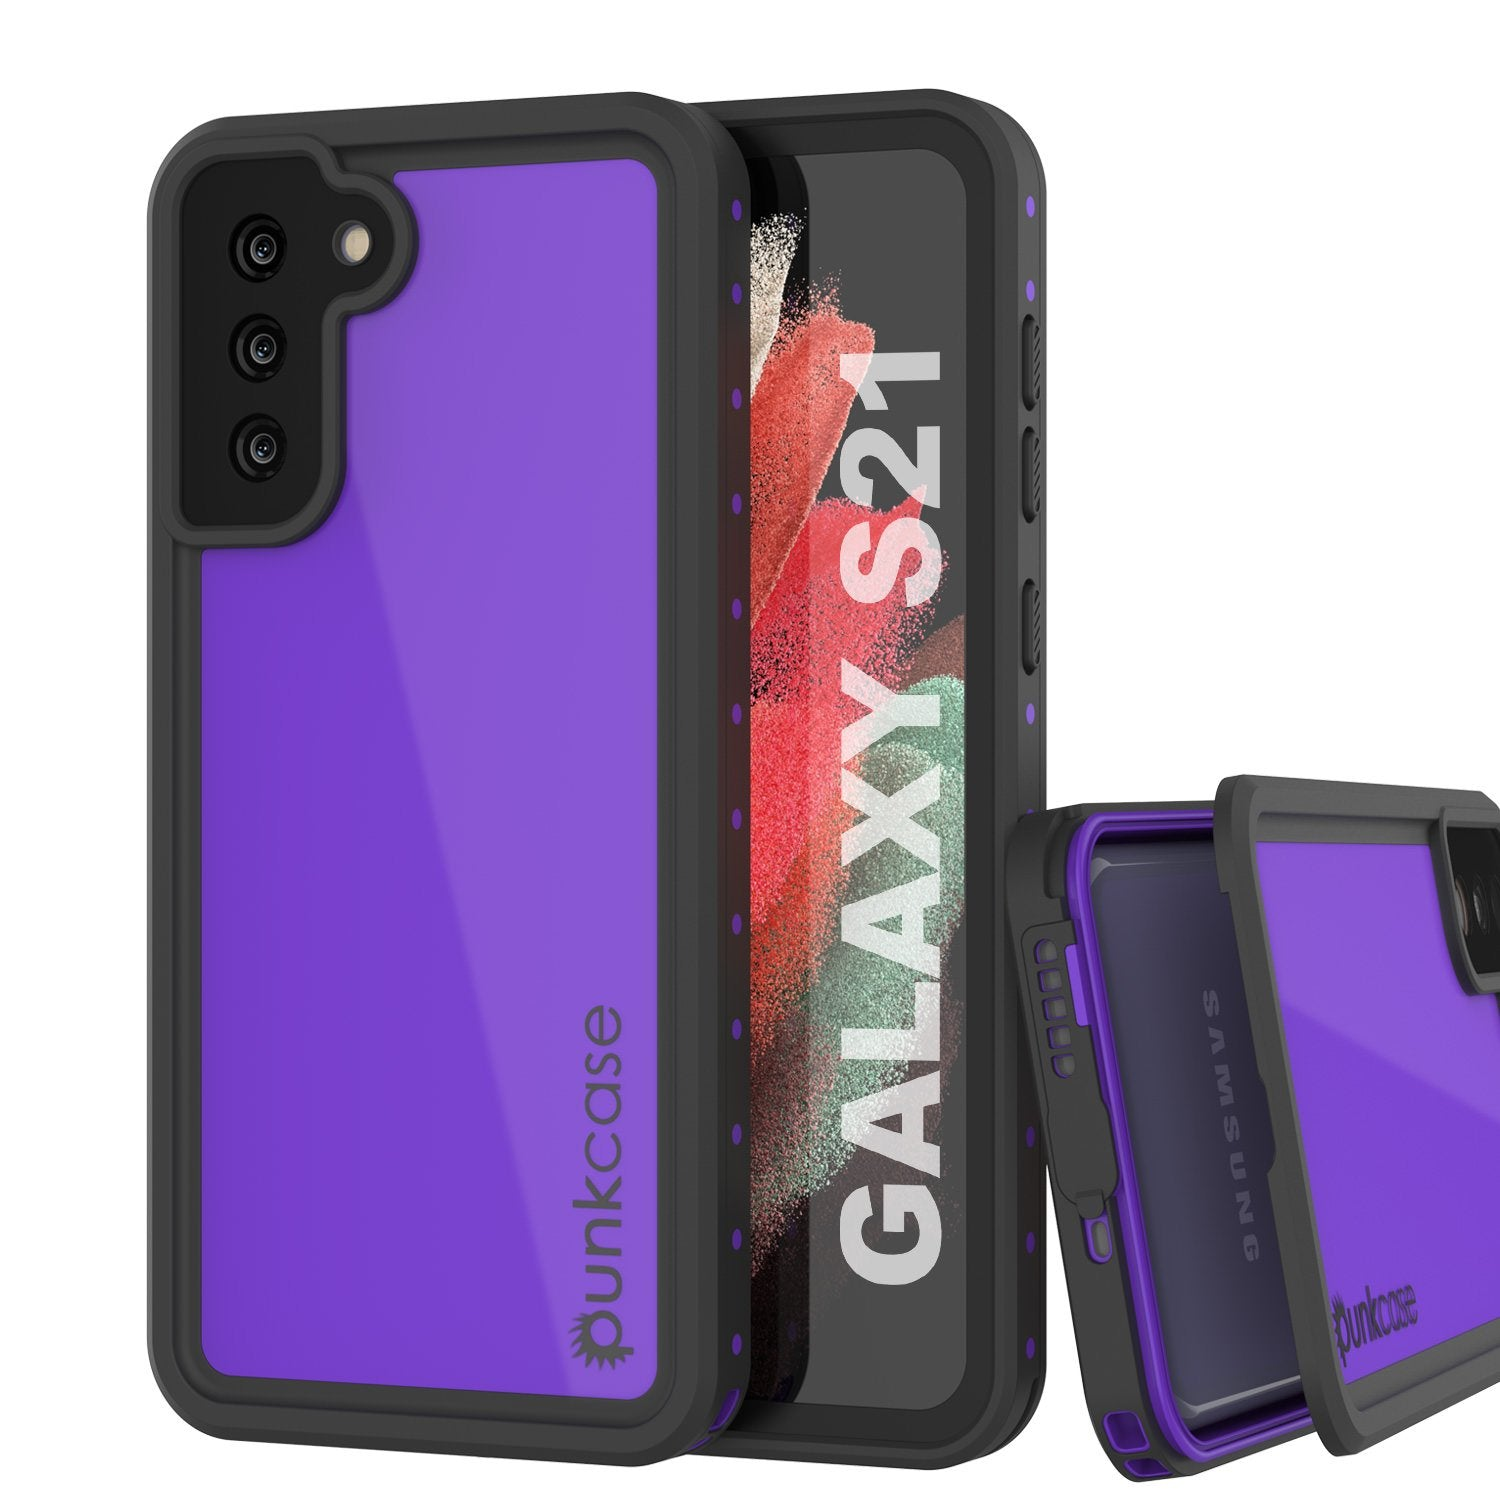 Galaxy S21 Waterproof Case PunkCase StudStar Purple Thin 6.6ft Underwater IP68 Shock/Snow Proof